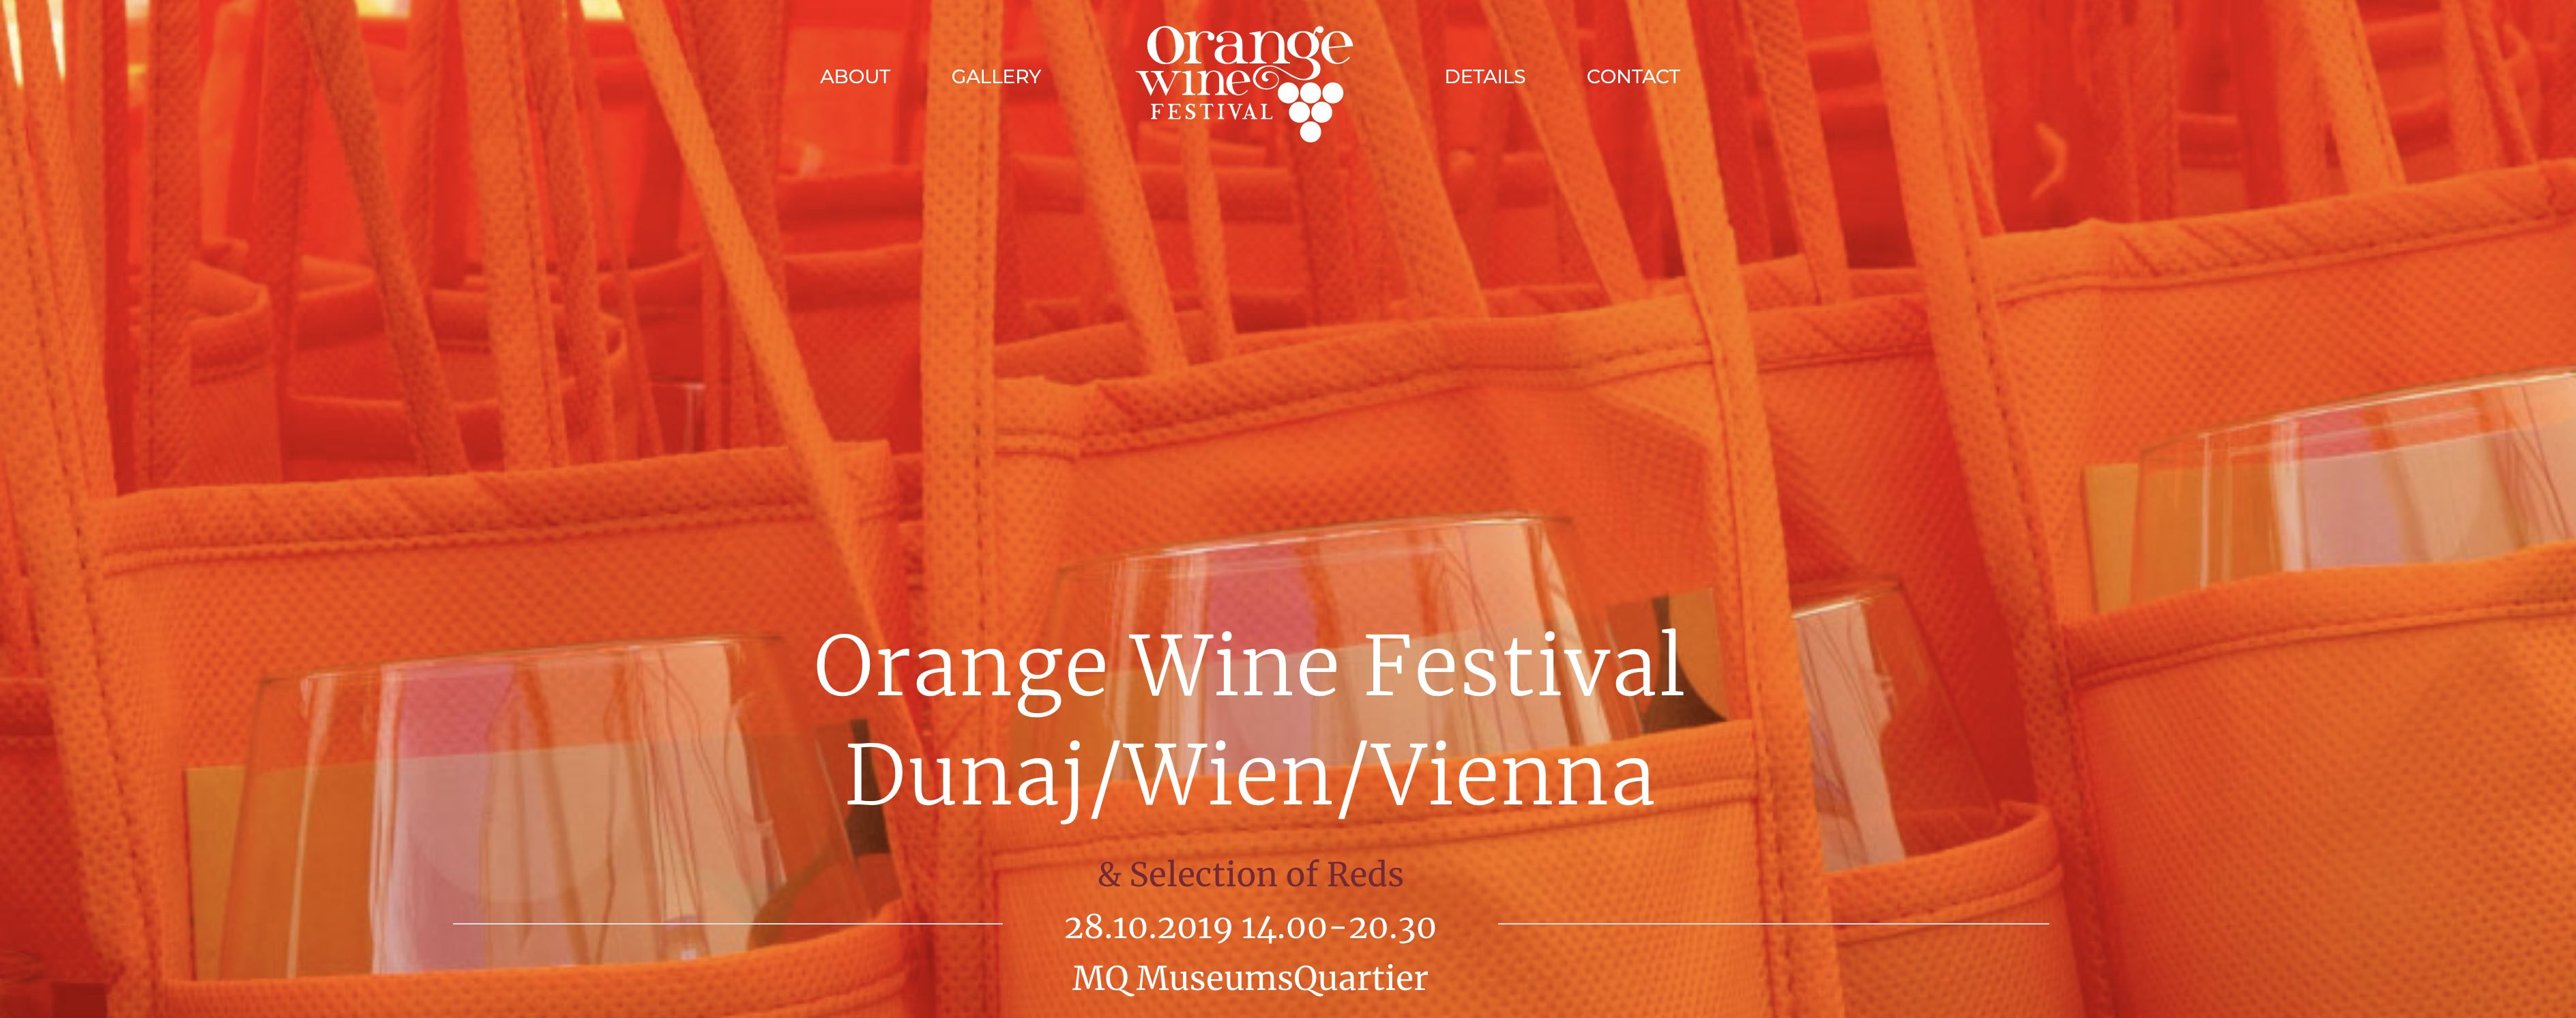 Orange-wine-festival-lungo